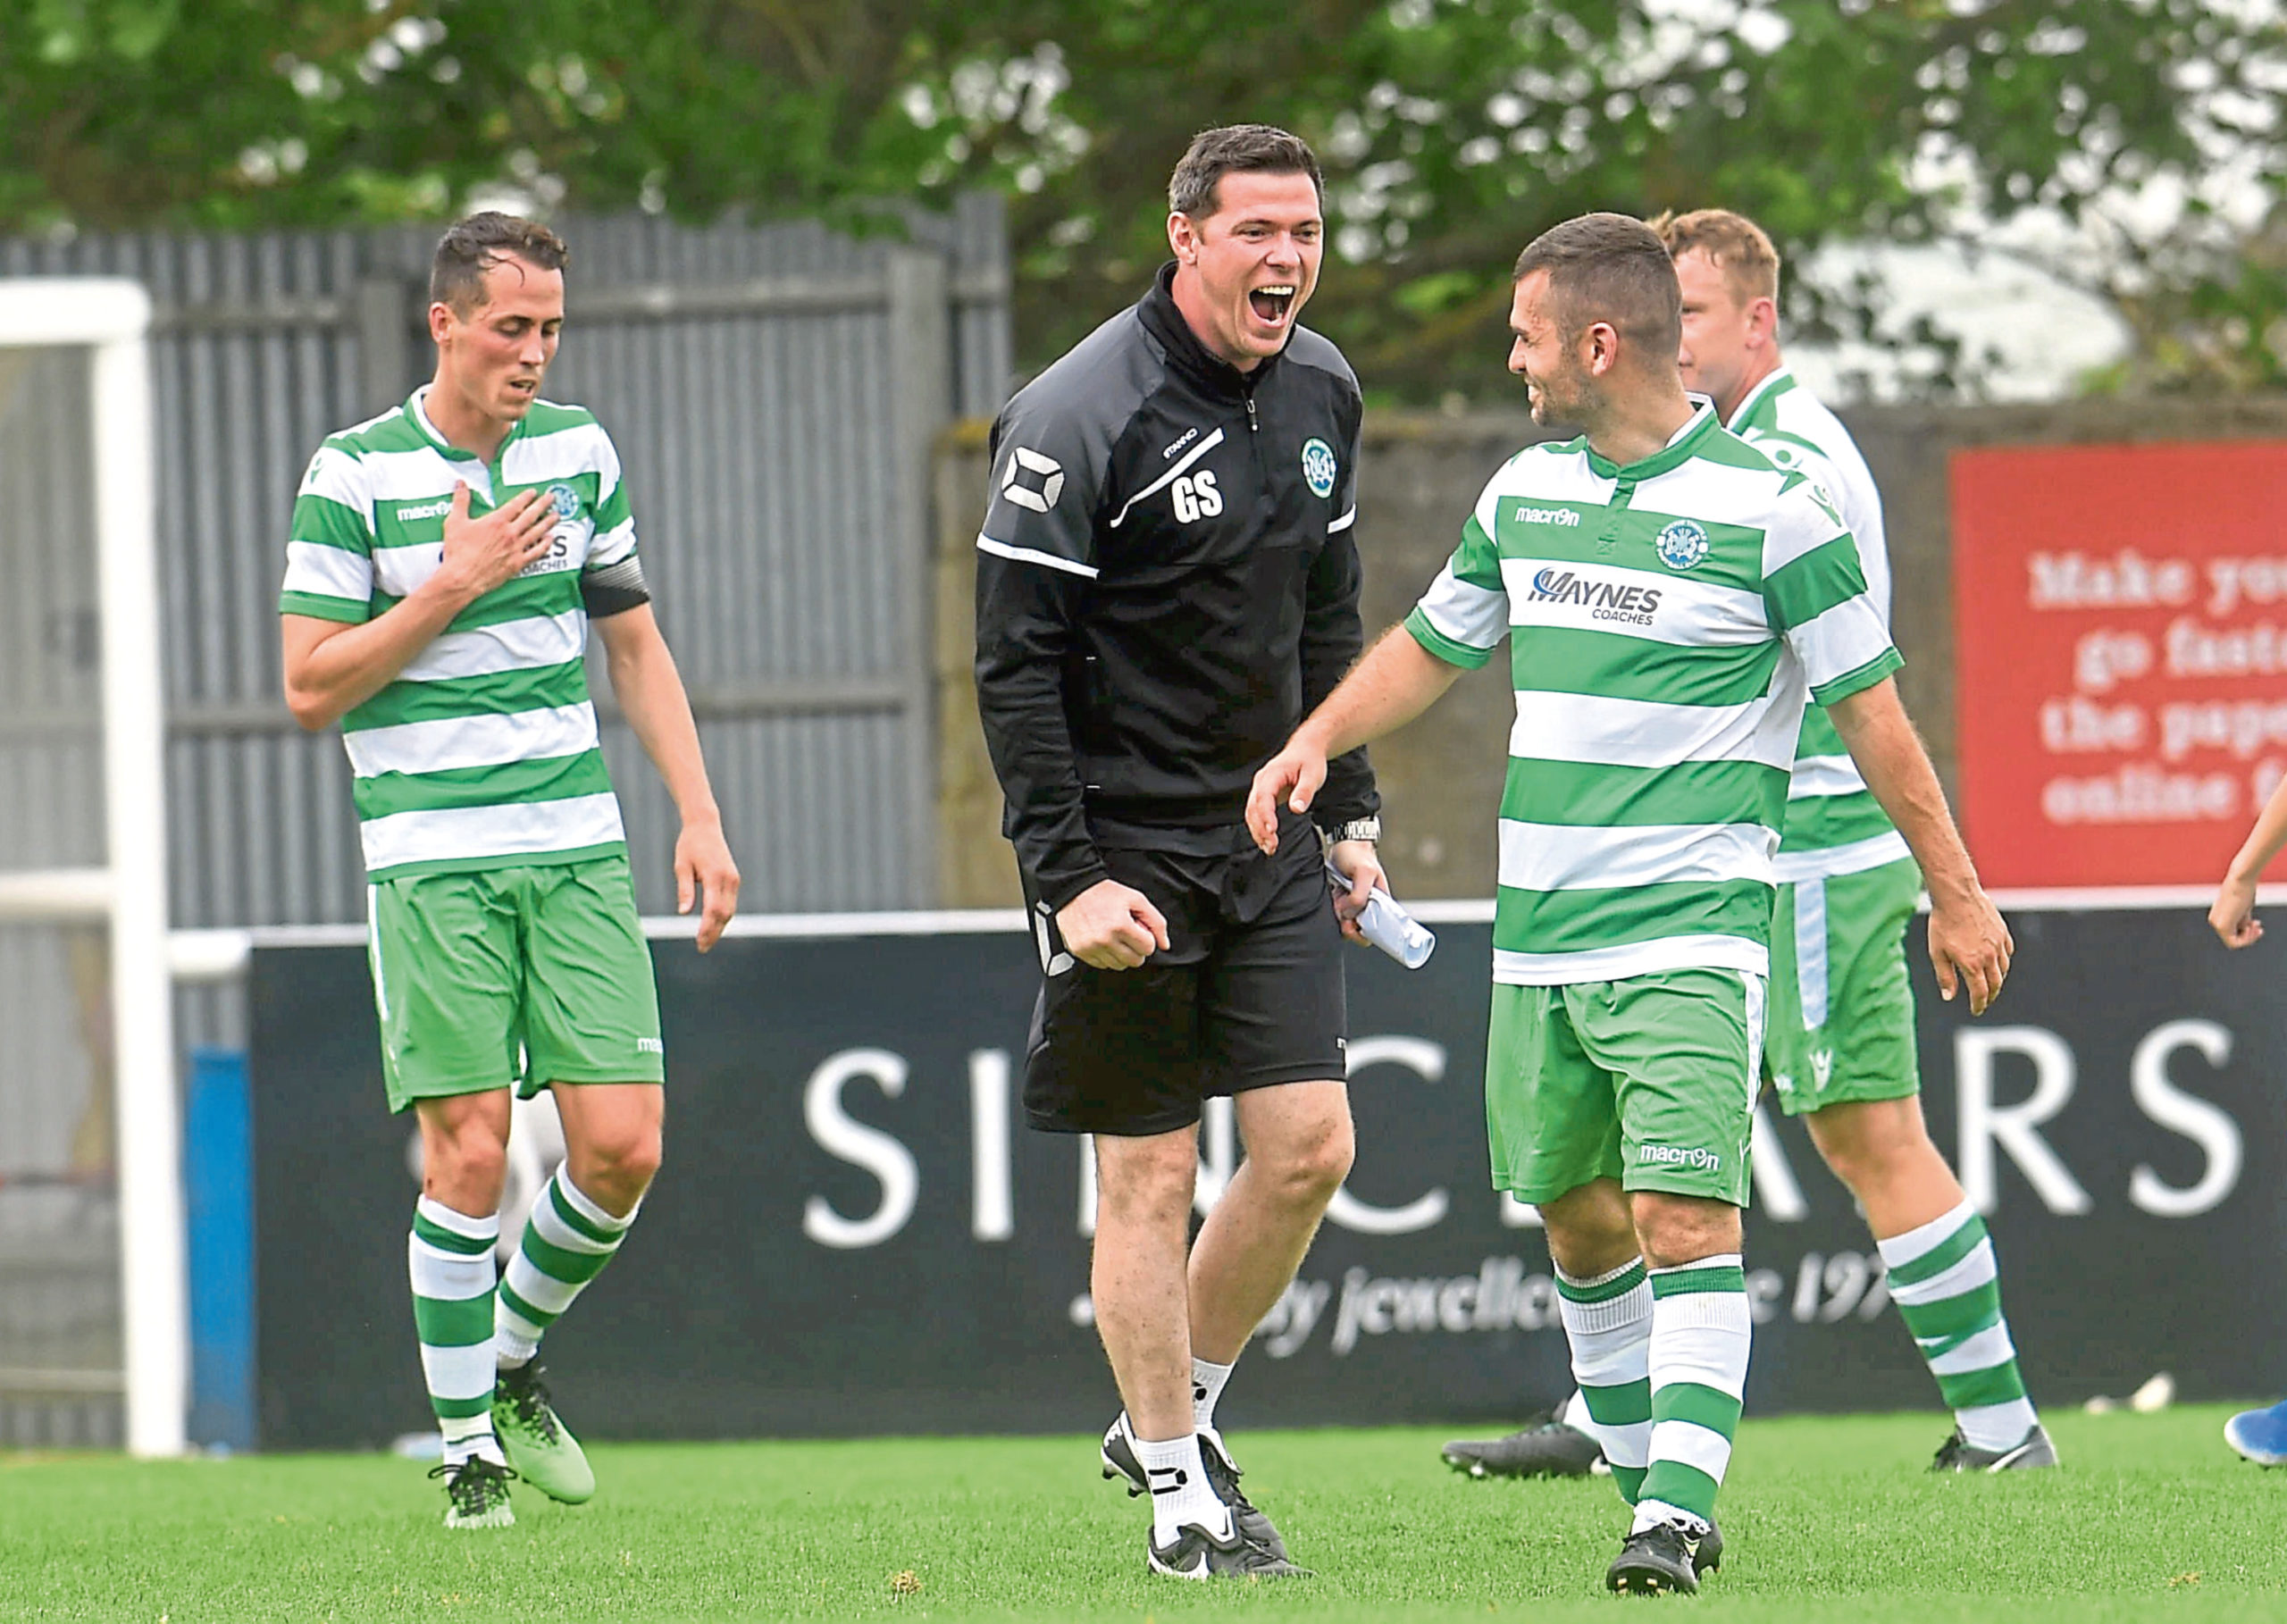 Graeme Stewart with his players.